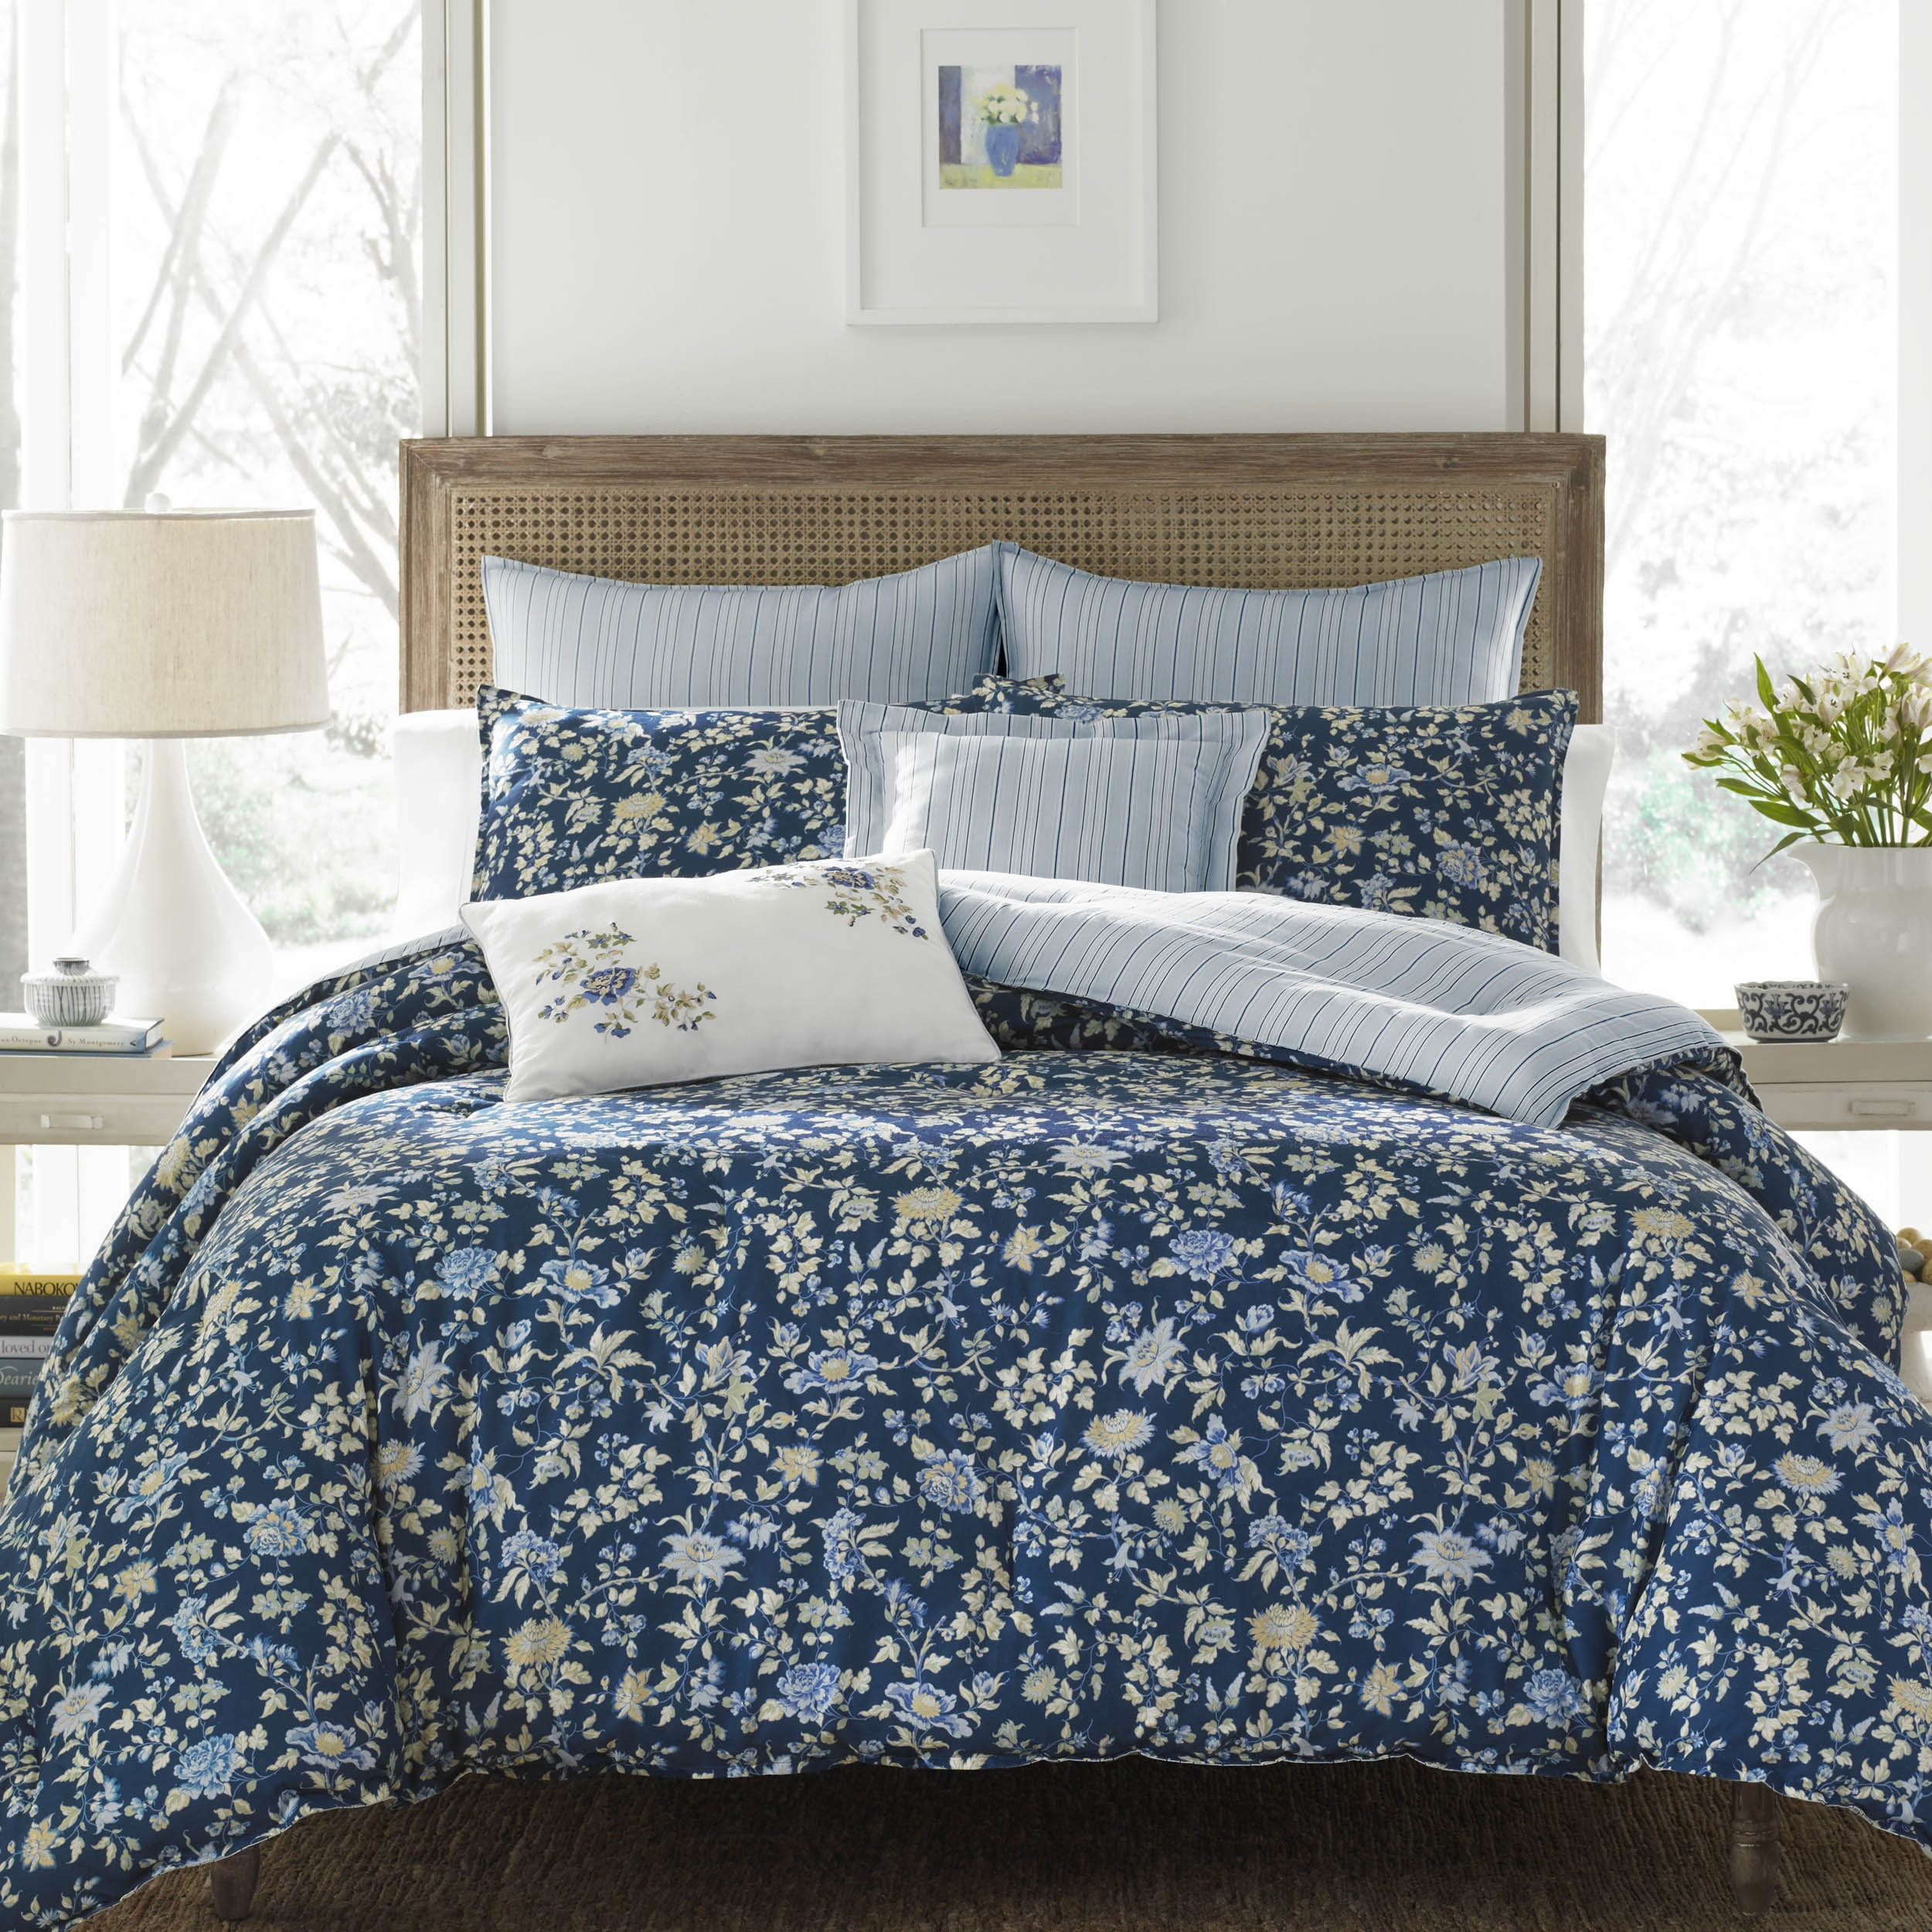 duvet holly hayneedle cover cfm by product dark piece set master vcny